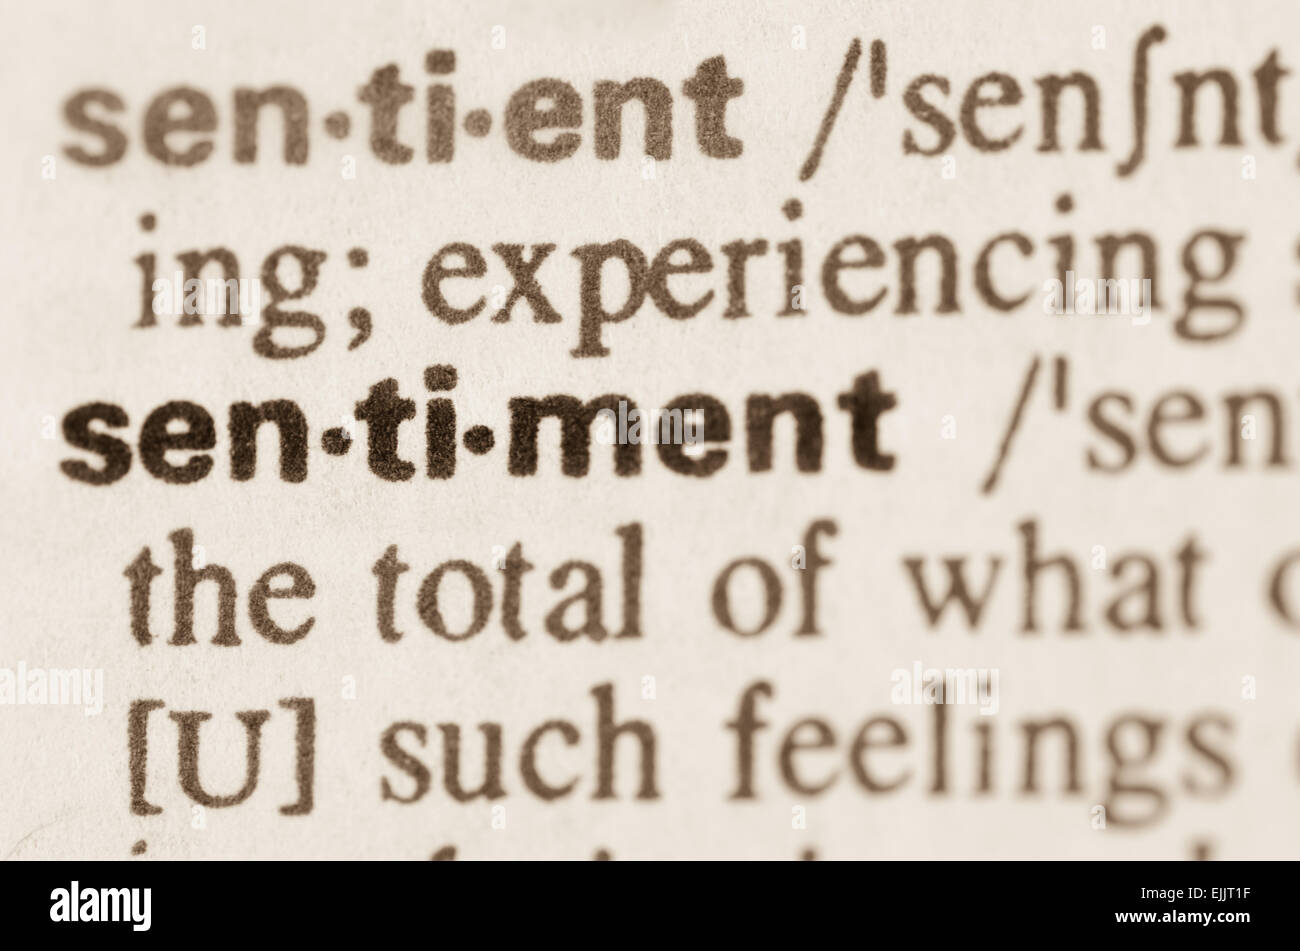 Definition of word sentiment in dictionary - Stock Image